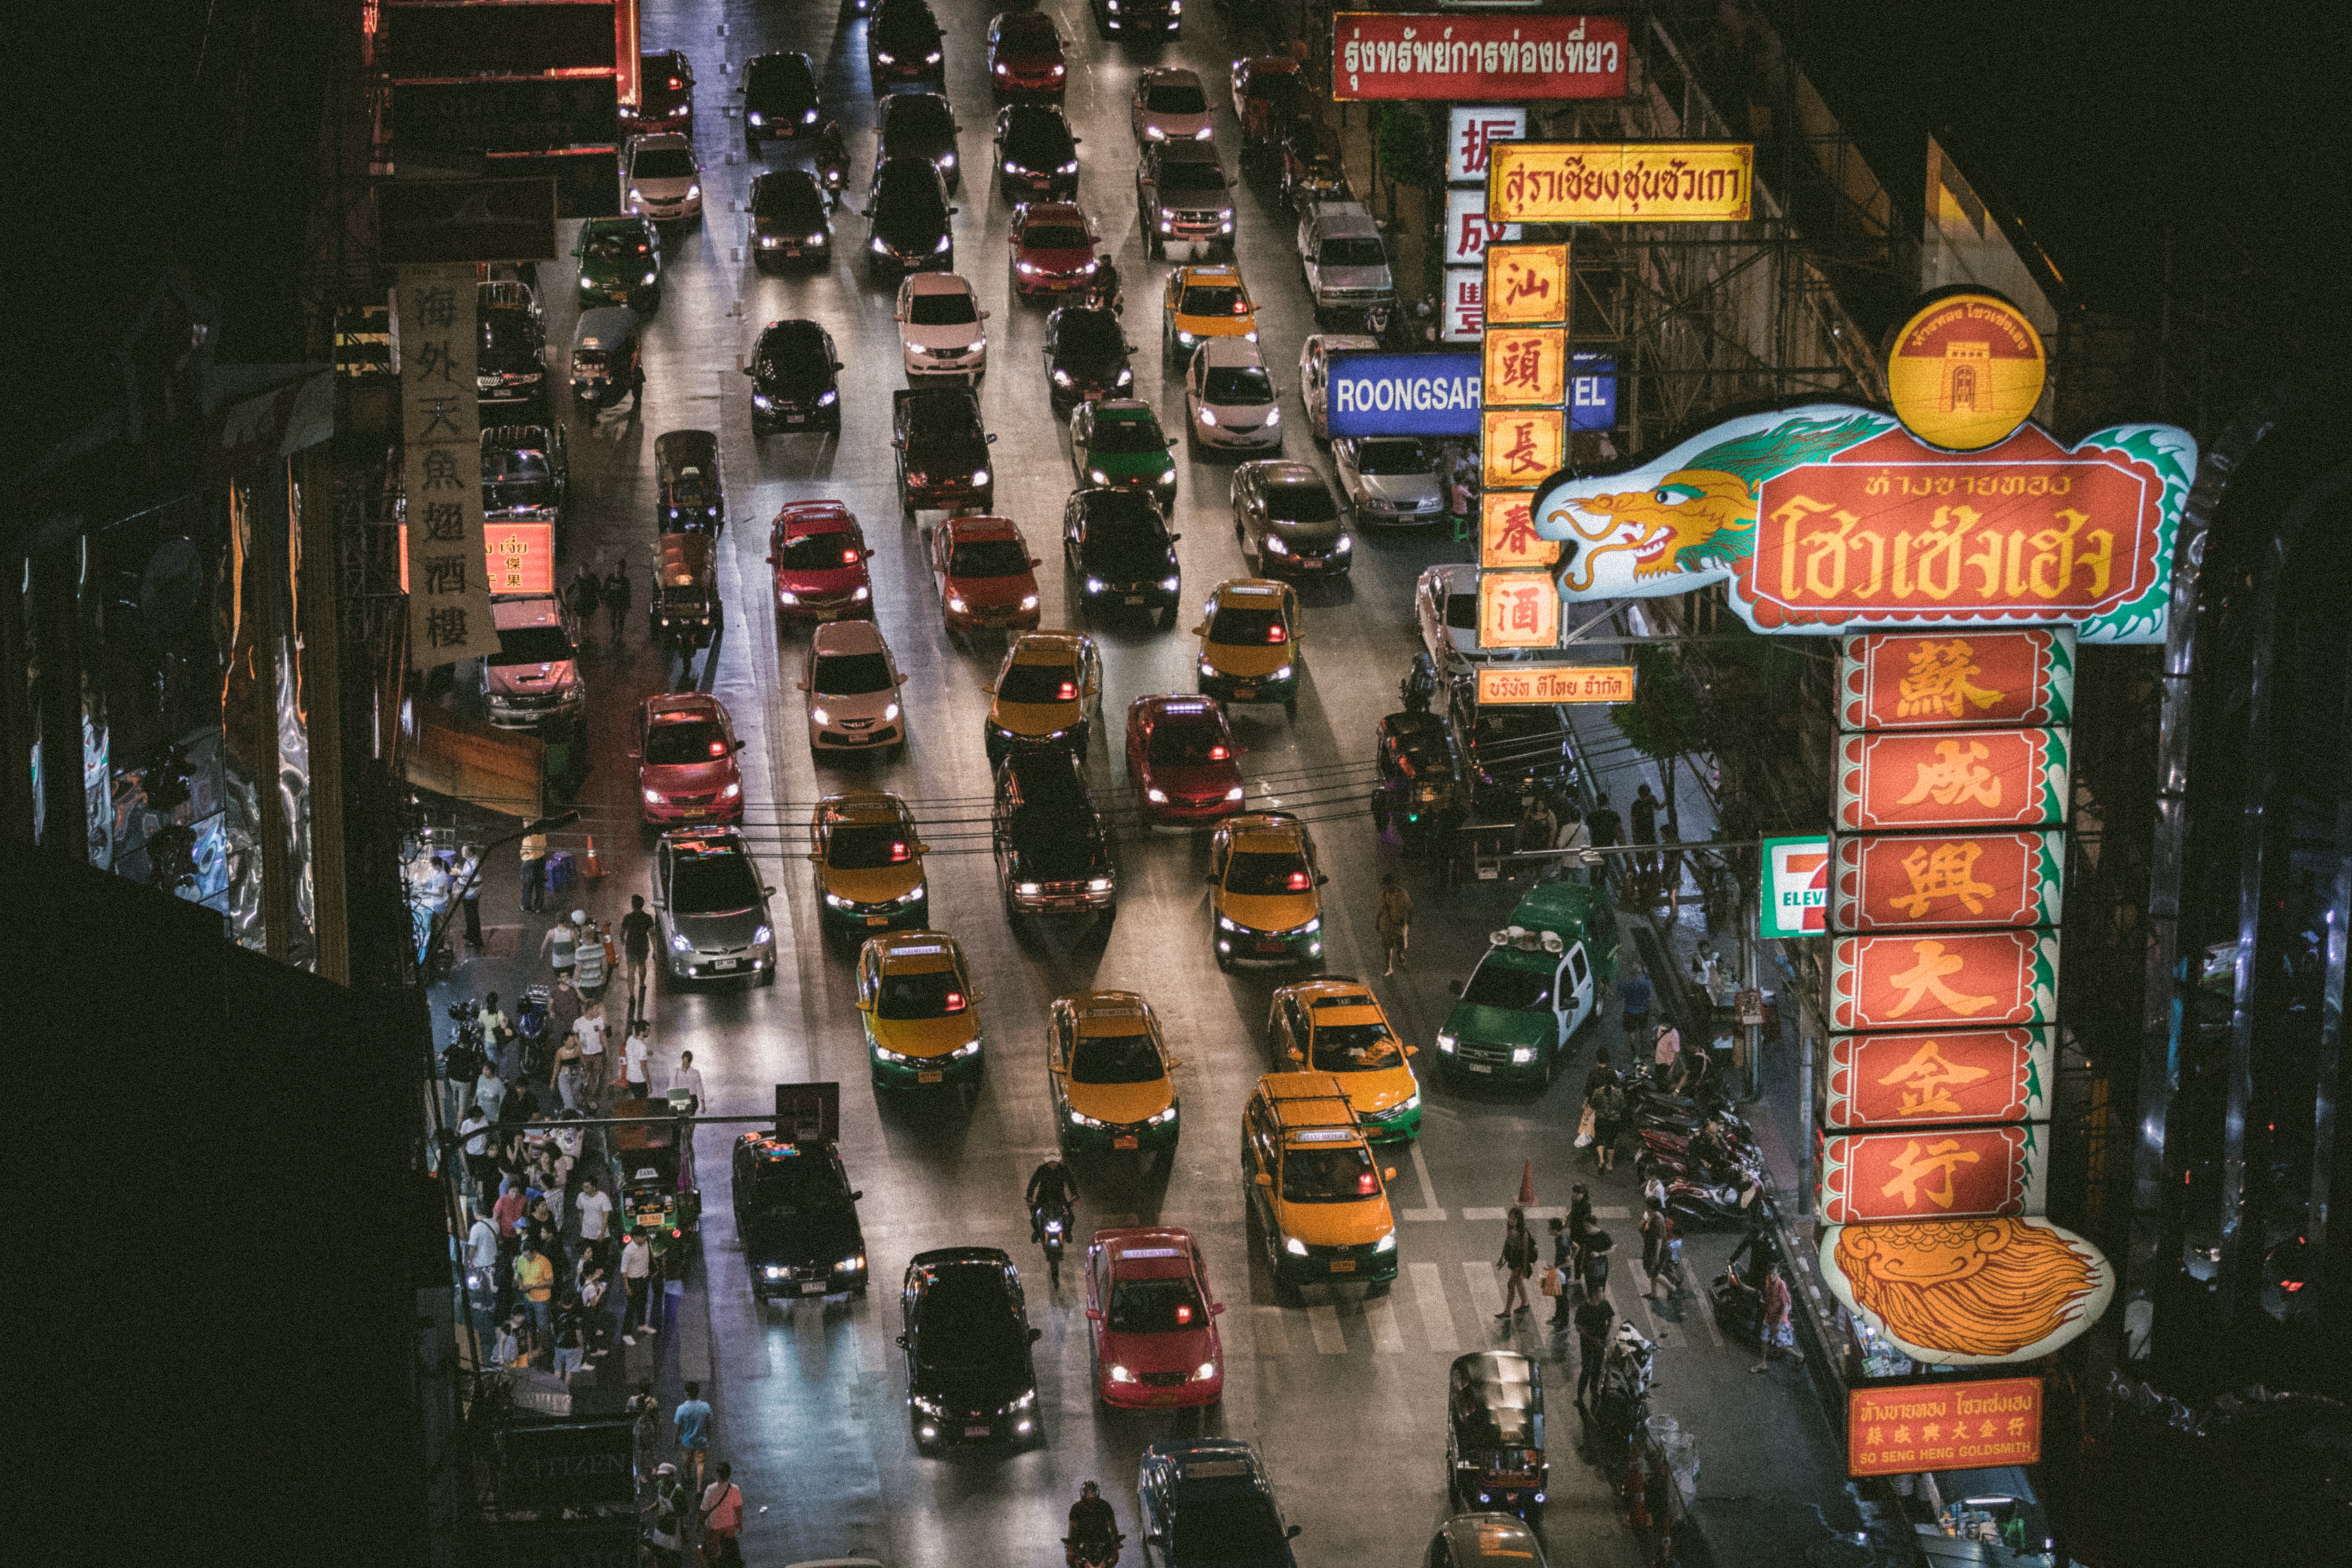 A drone shot of congested night traffic in Chinatown.